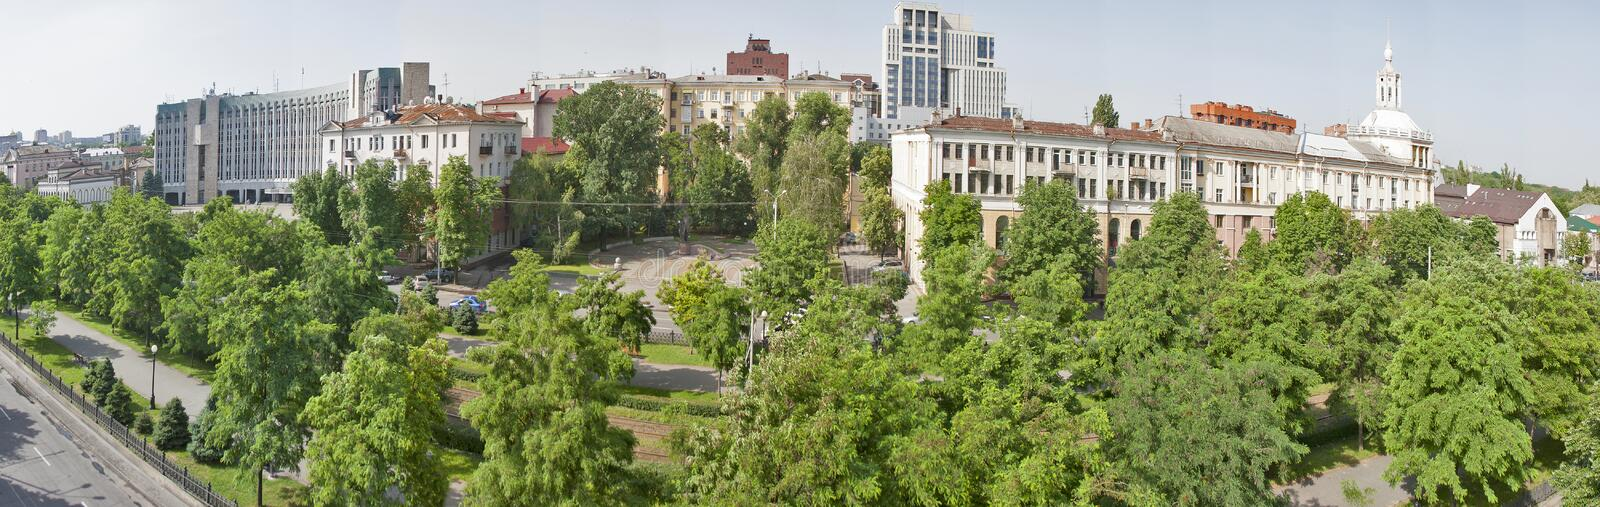 Download Panorama De Paysage Urbain De Dnipropetrovsk, Ukraine Photo stock - Image du architecture, résidentiel: 45352402